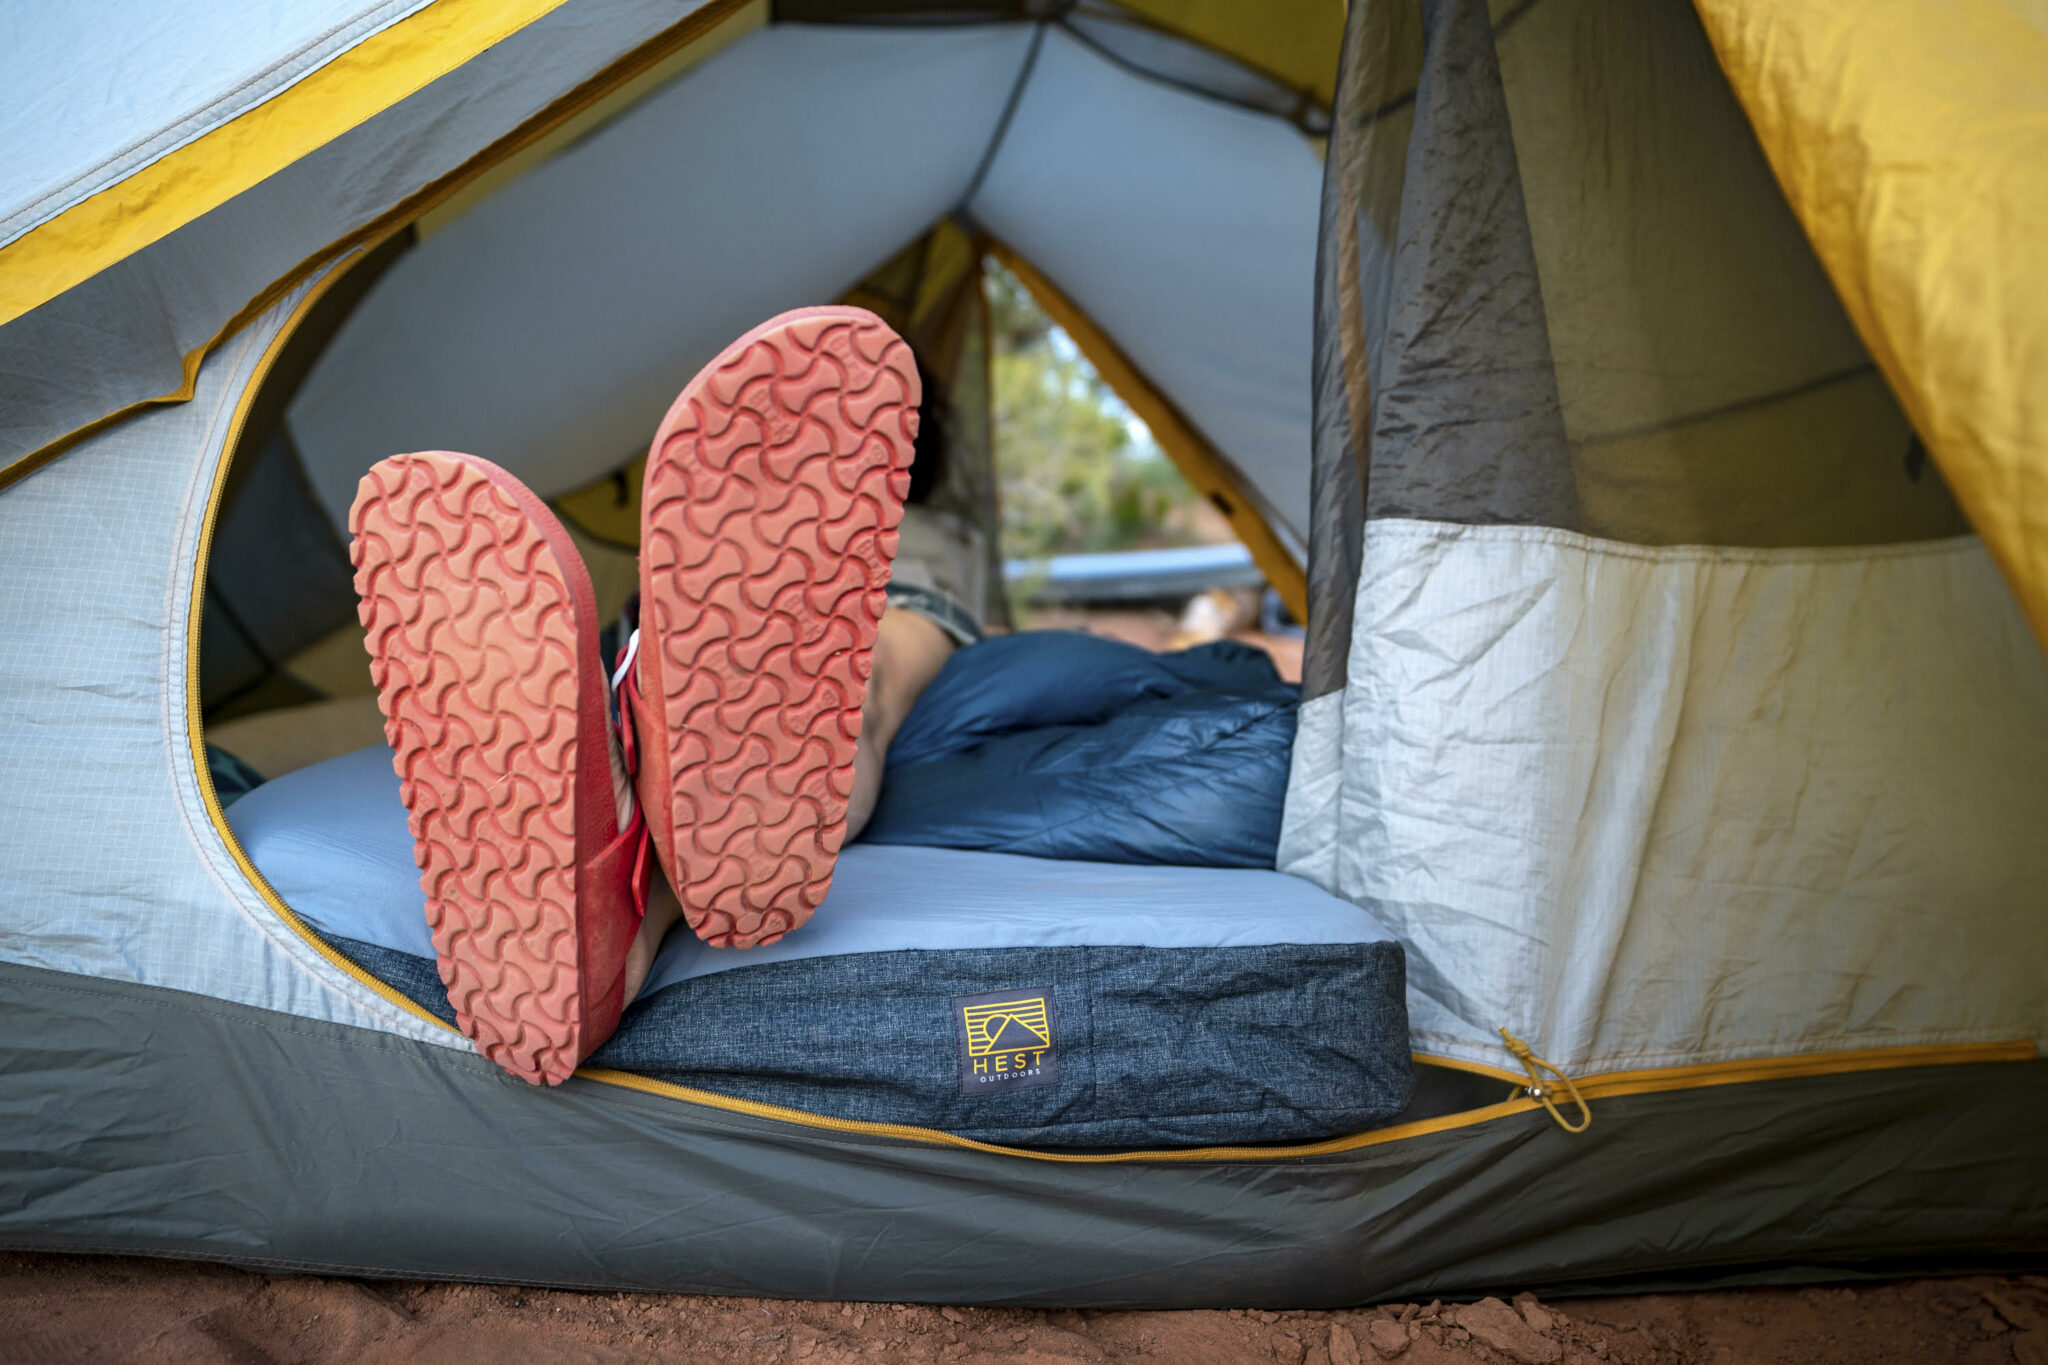 Seattle startup led by former K2 exec raises $950K to help you sleep better while camping